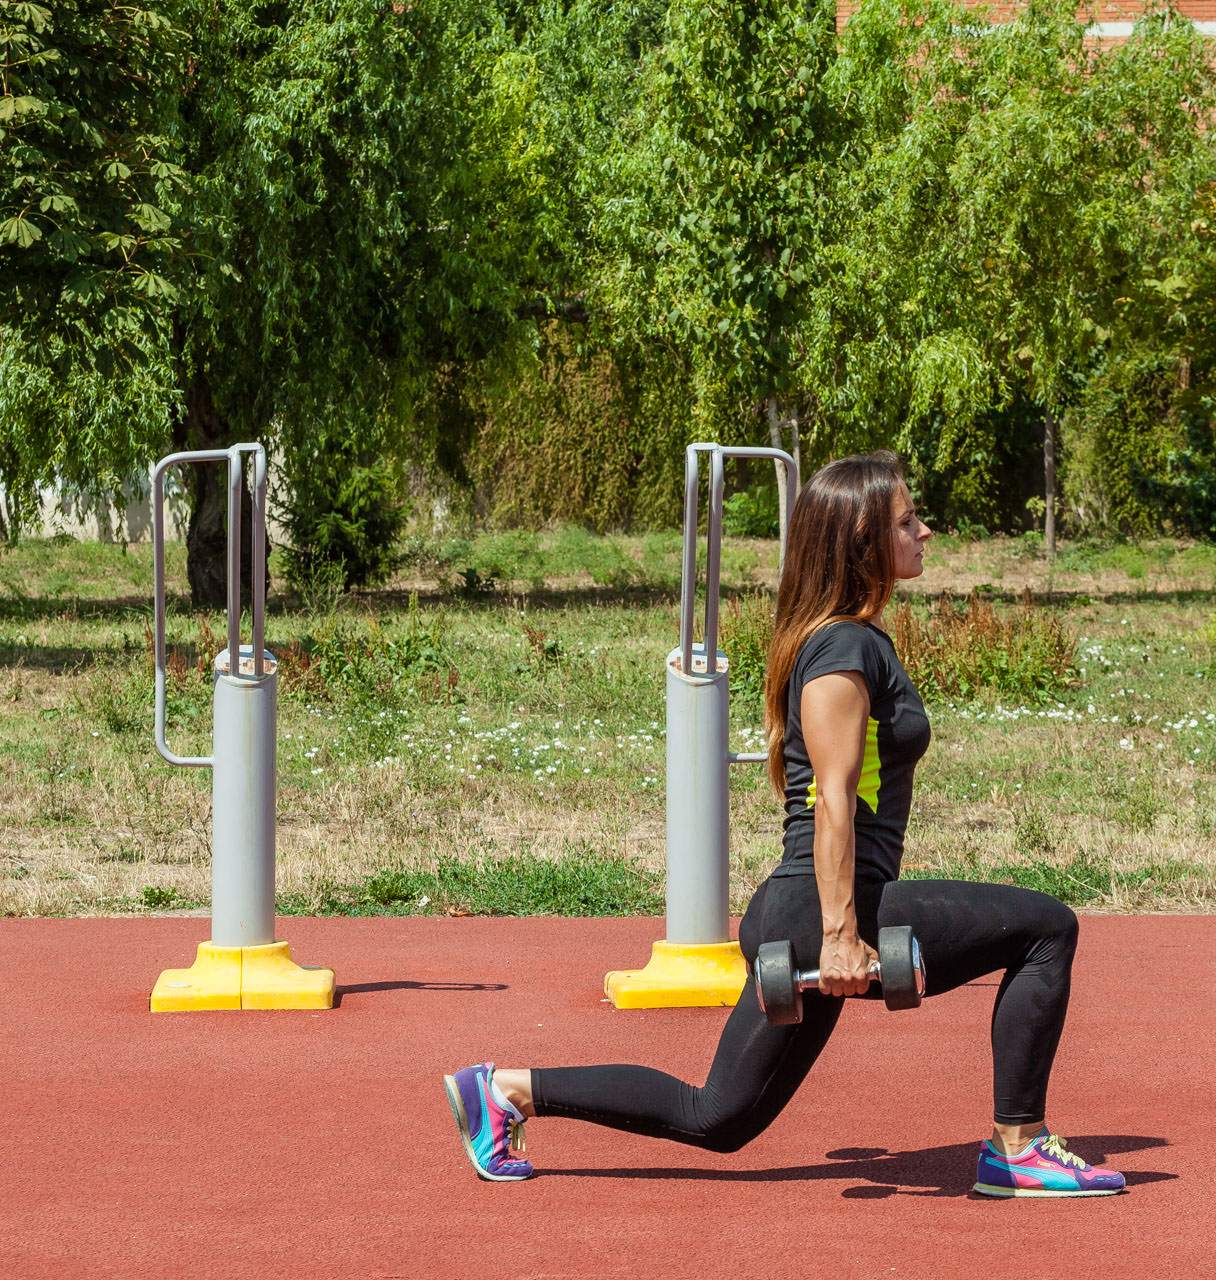 Dumbbell Lunges frame #2